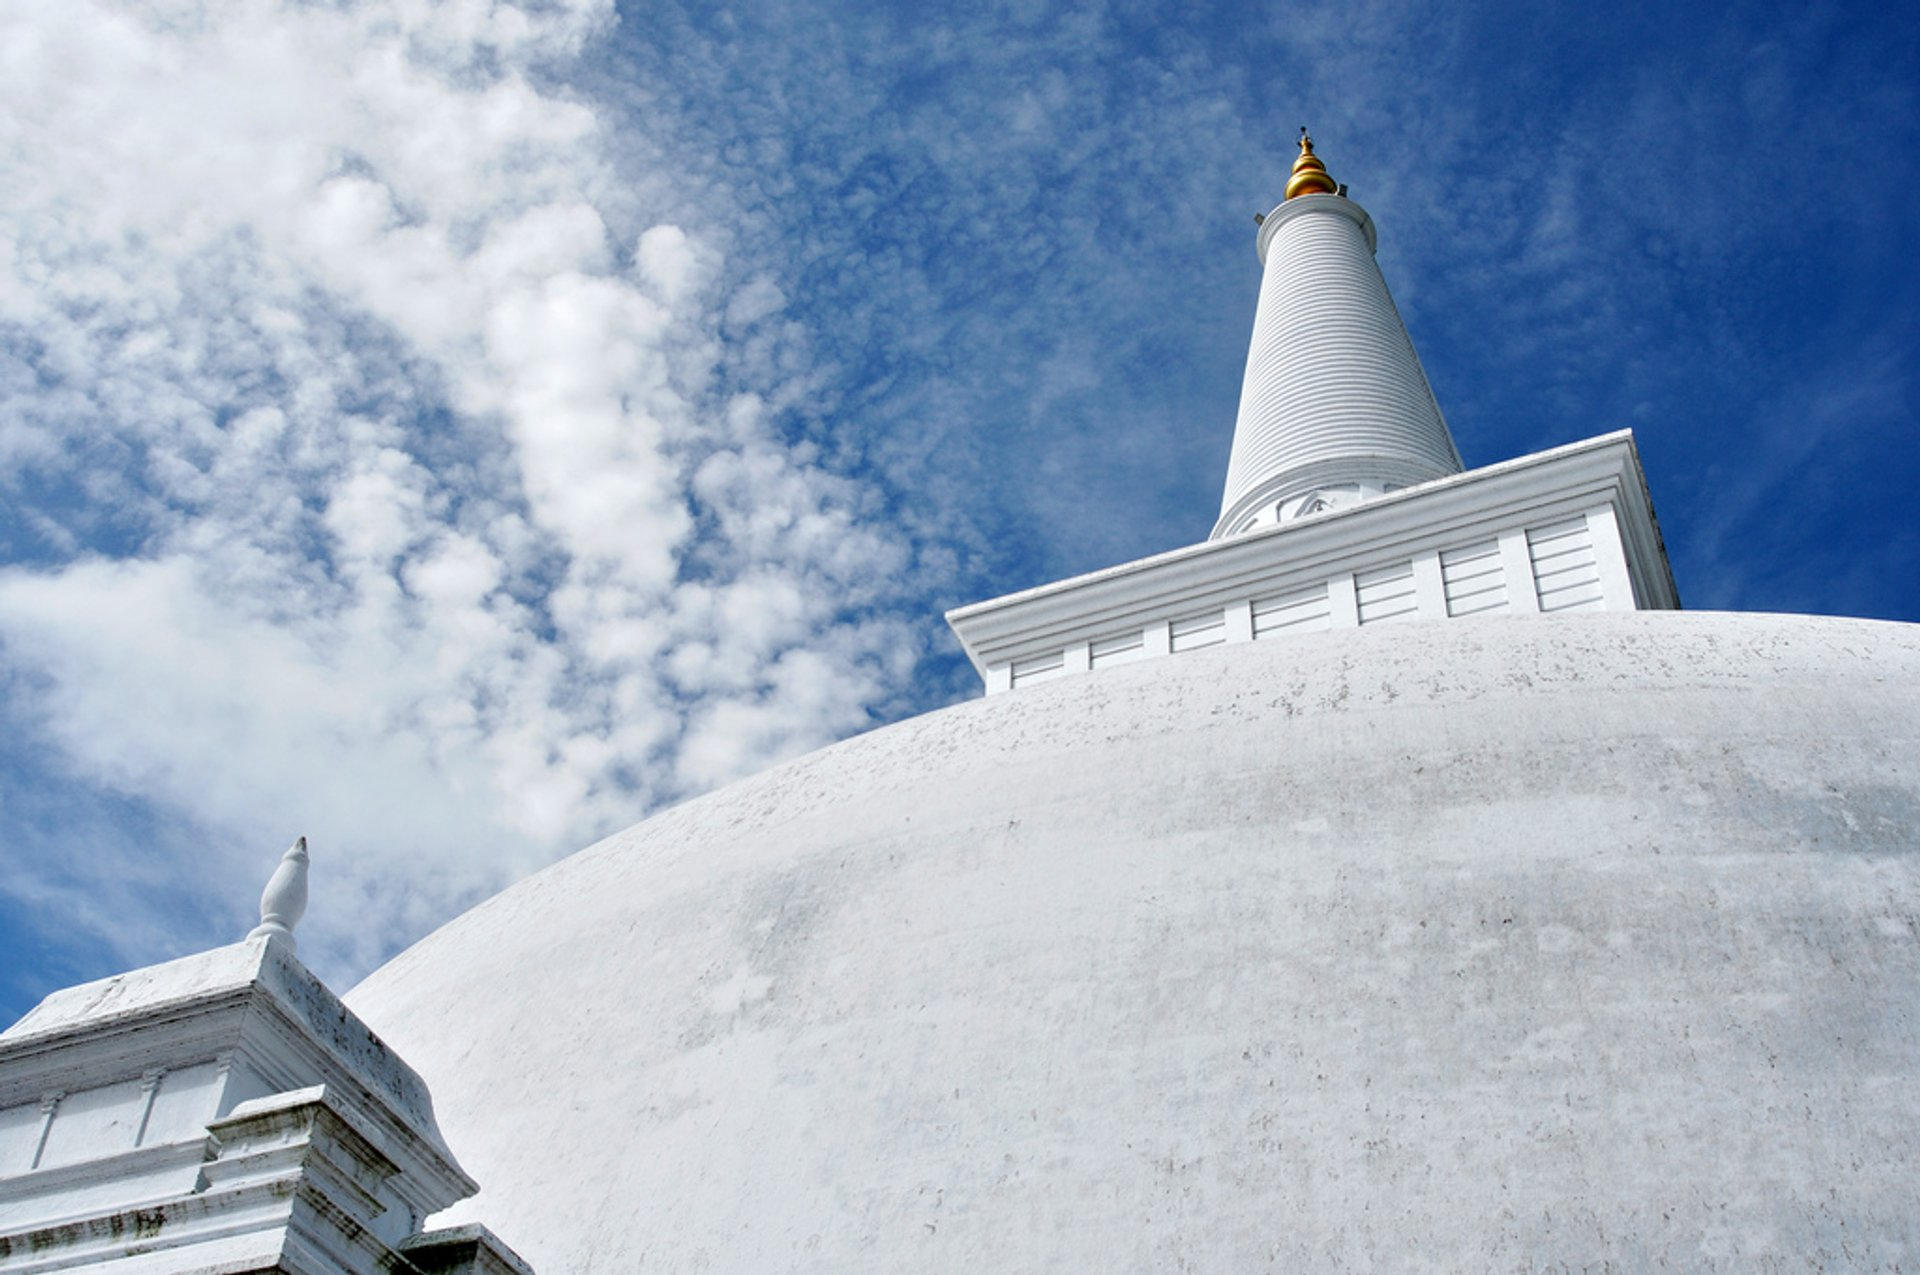 Anuradhapura in Sri Lanka 2020 - Best Time